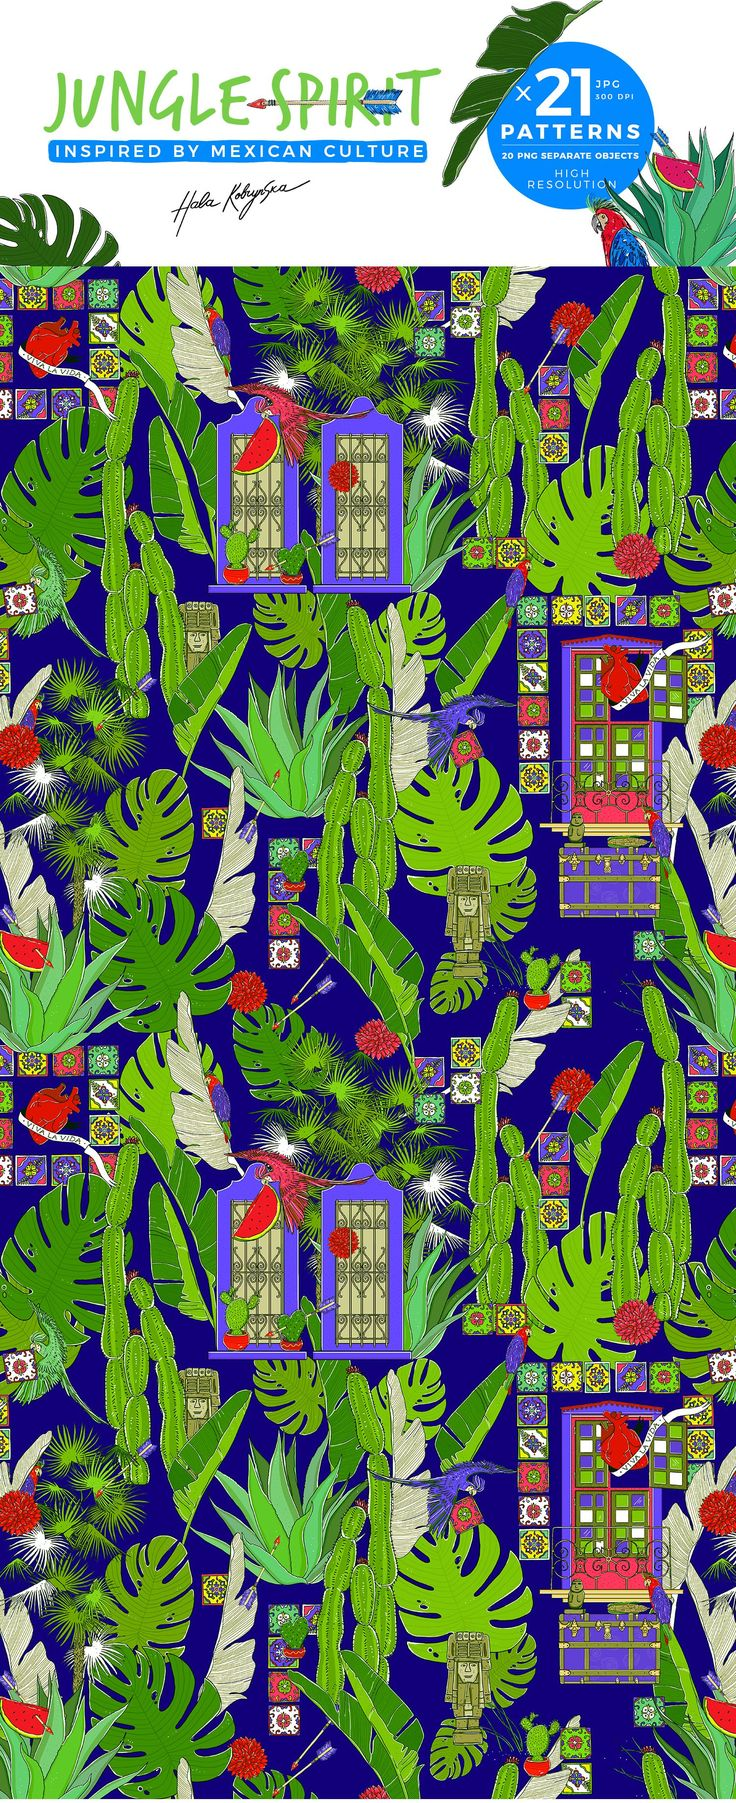 Summer anyone? Here is my hand drawn jungle pattern inspired by Mexican culture ❤   Hand draw seamless jungle pattern inspired by Mexican culture. Include palm leaves, cactuses, parrots, arrows, azulejos, heart, viva la vida, mexican windows, chest, jungle leaves. You can use it for your fabric, wallpaper, cards, blogs, magazines, wallpapers, background of web page, textile for kids goods etc.  All patterns and illustrations are copyright of Hala Kobrynska ©